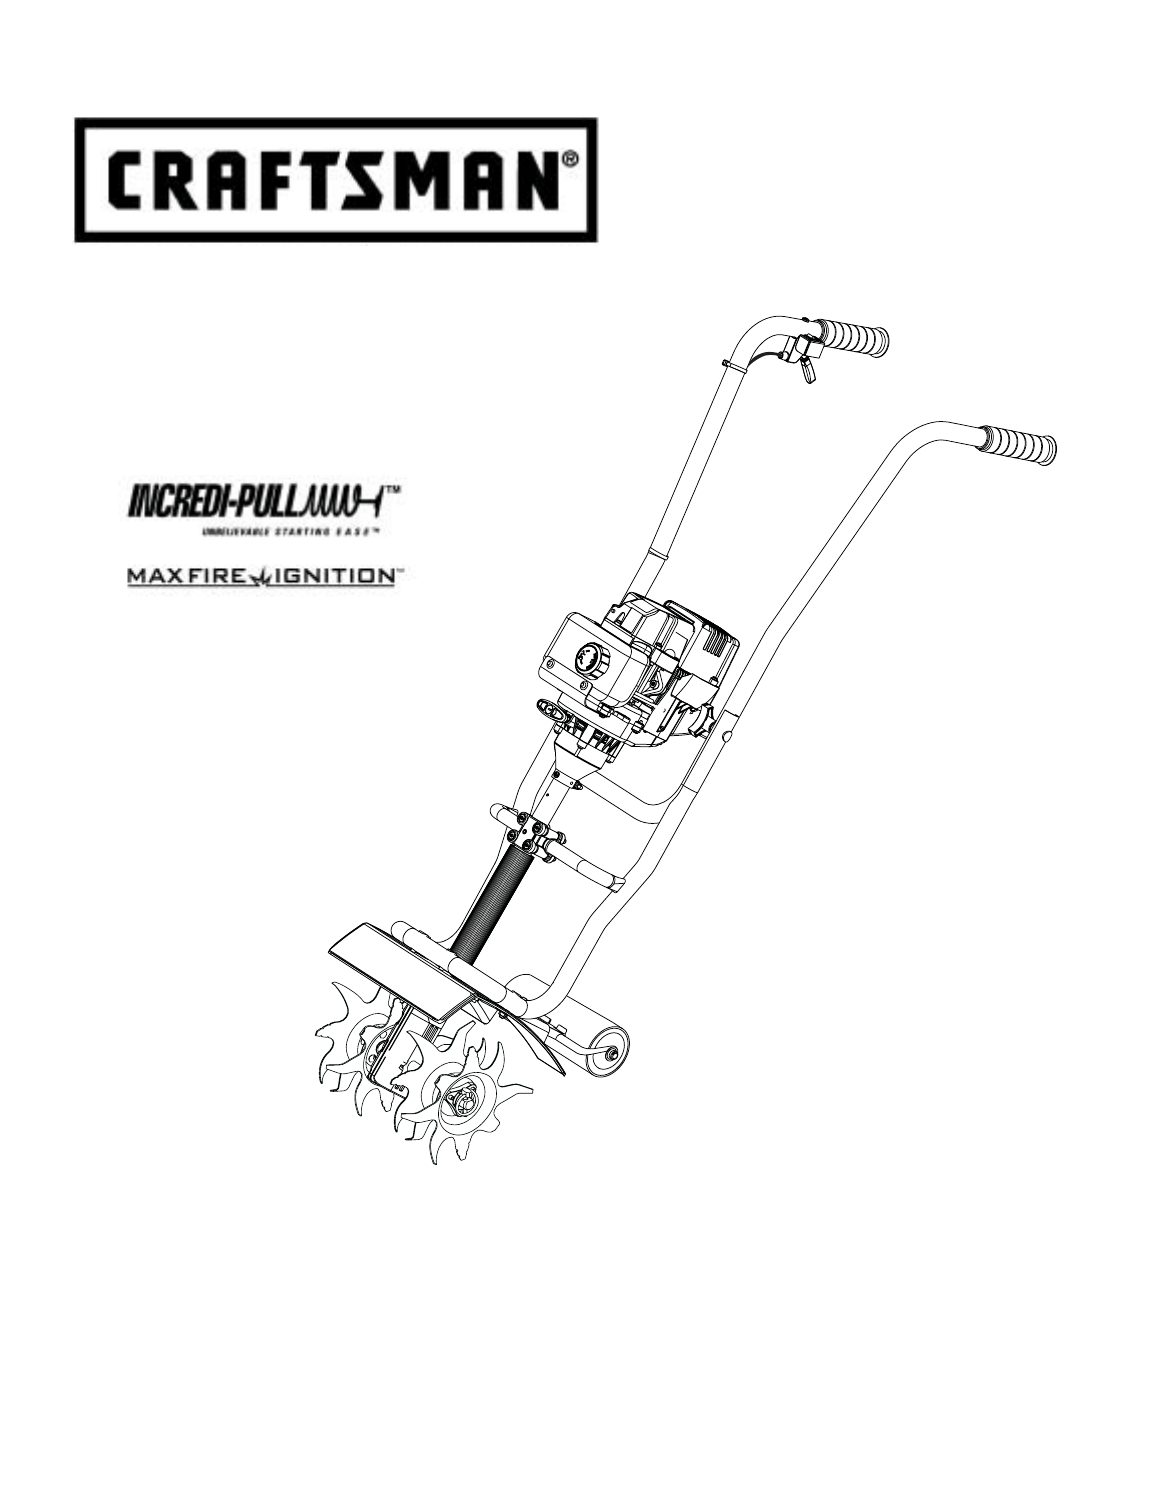 Download free software Craftsman 4 Cycle Tiller Manual